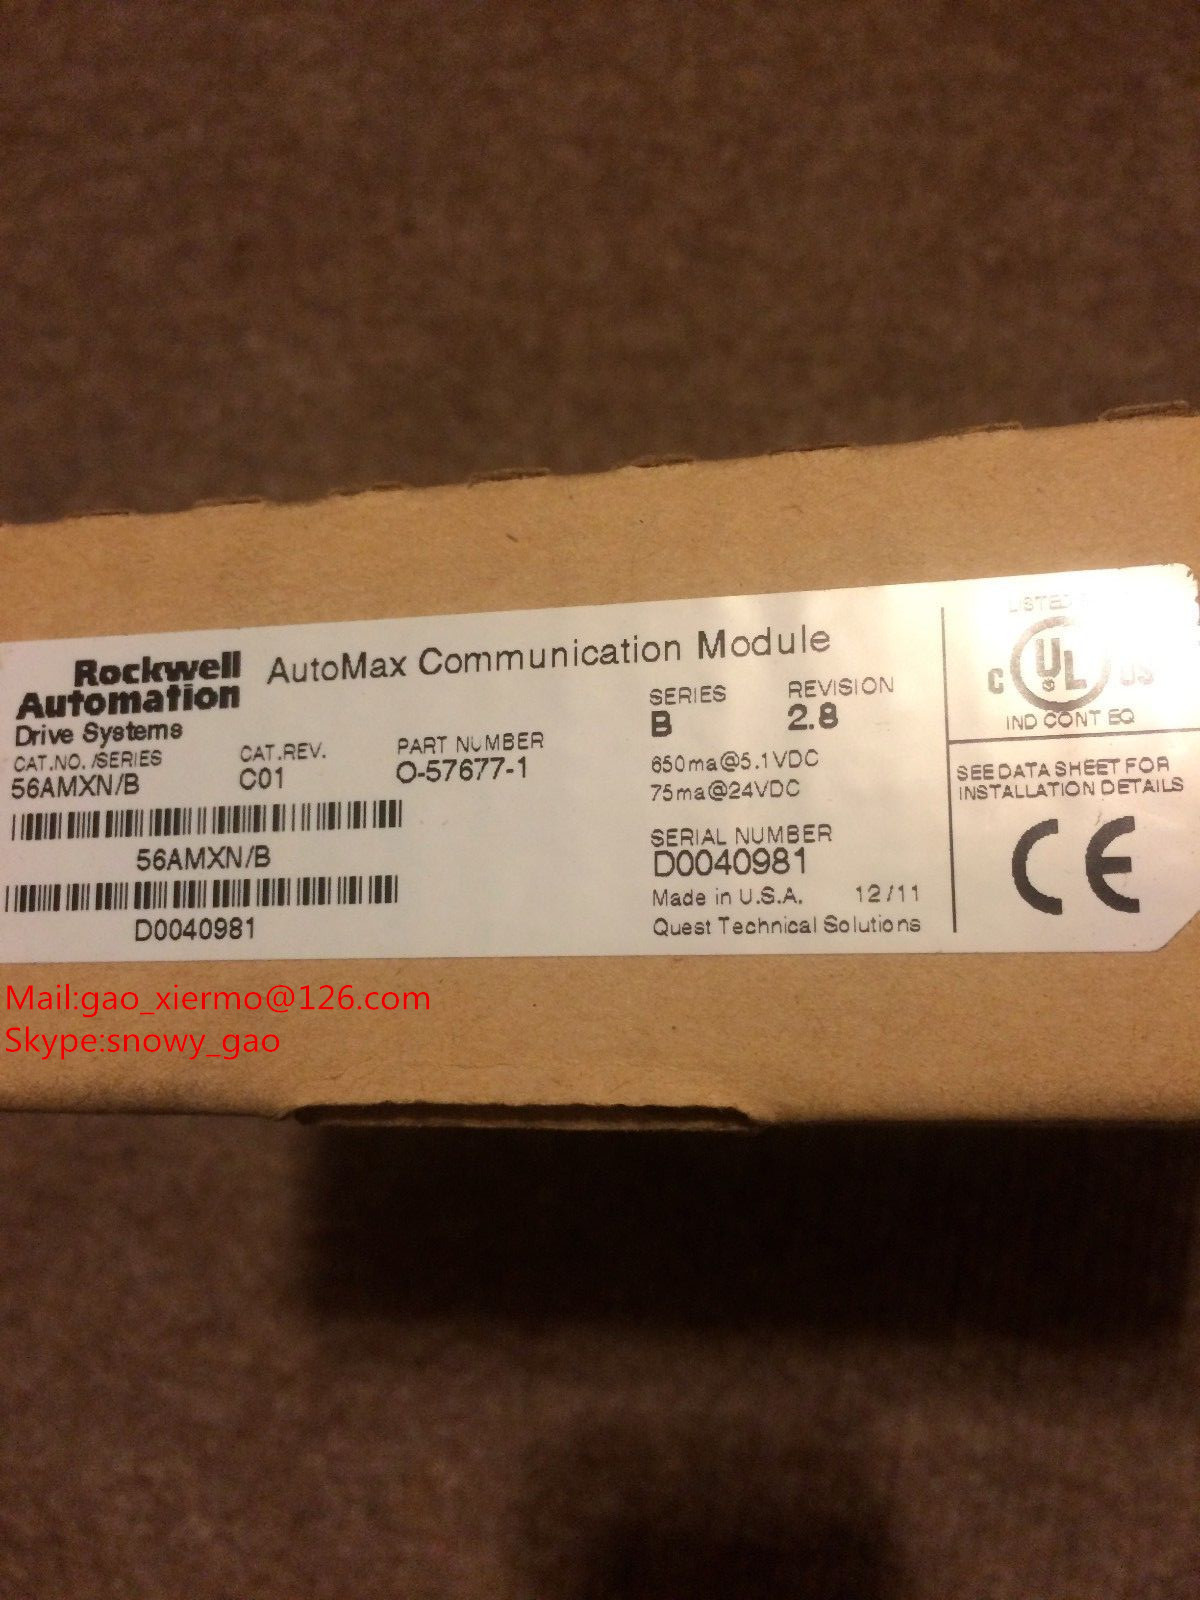 Rockwell 56AMXN/B O-57677-1 Communication module